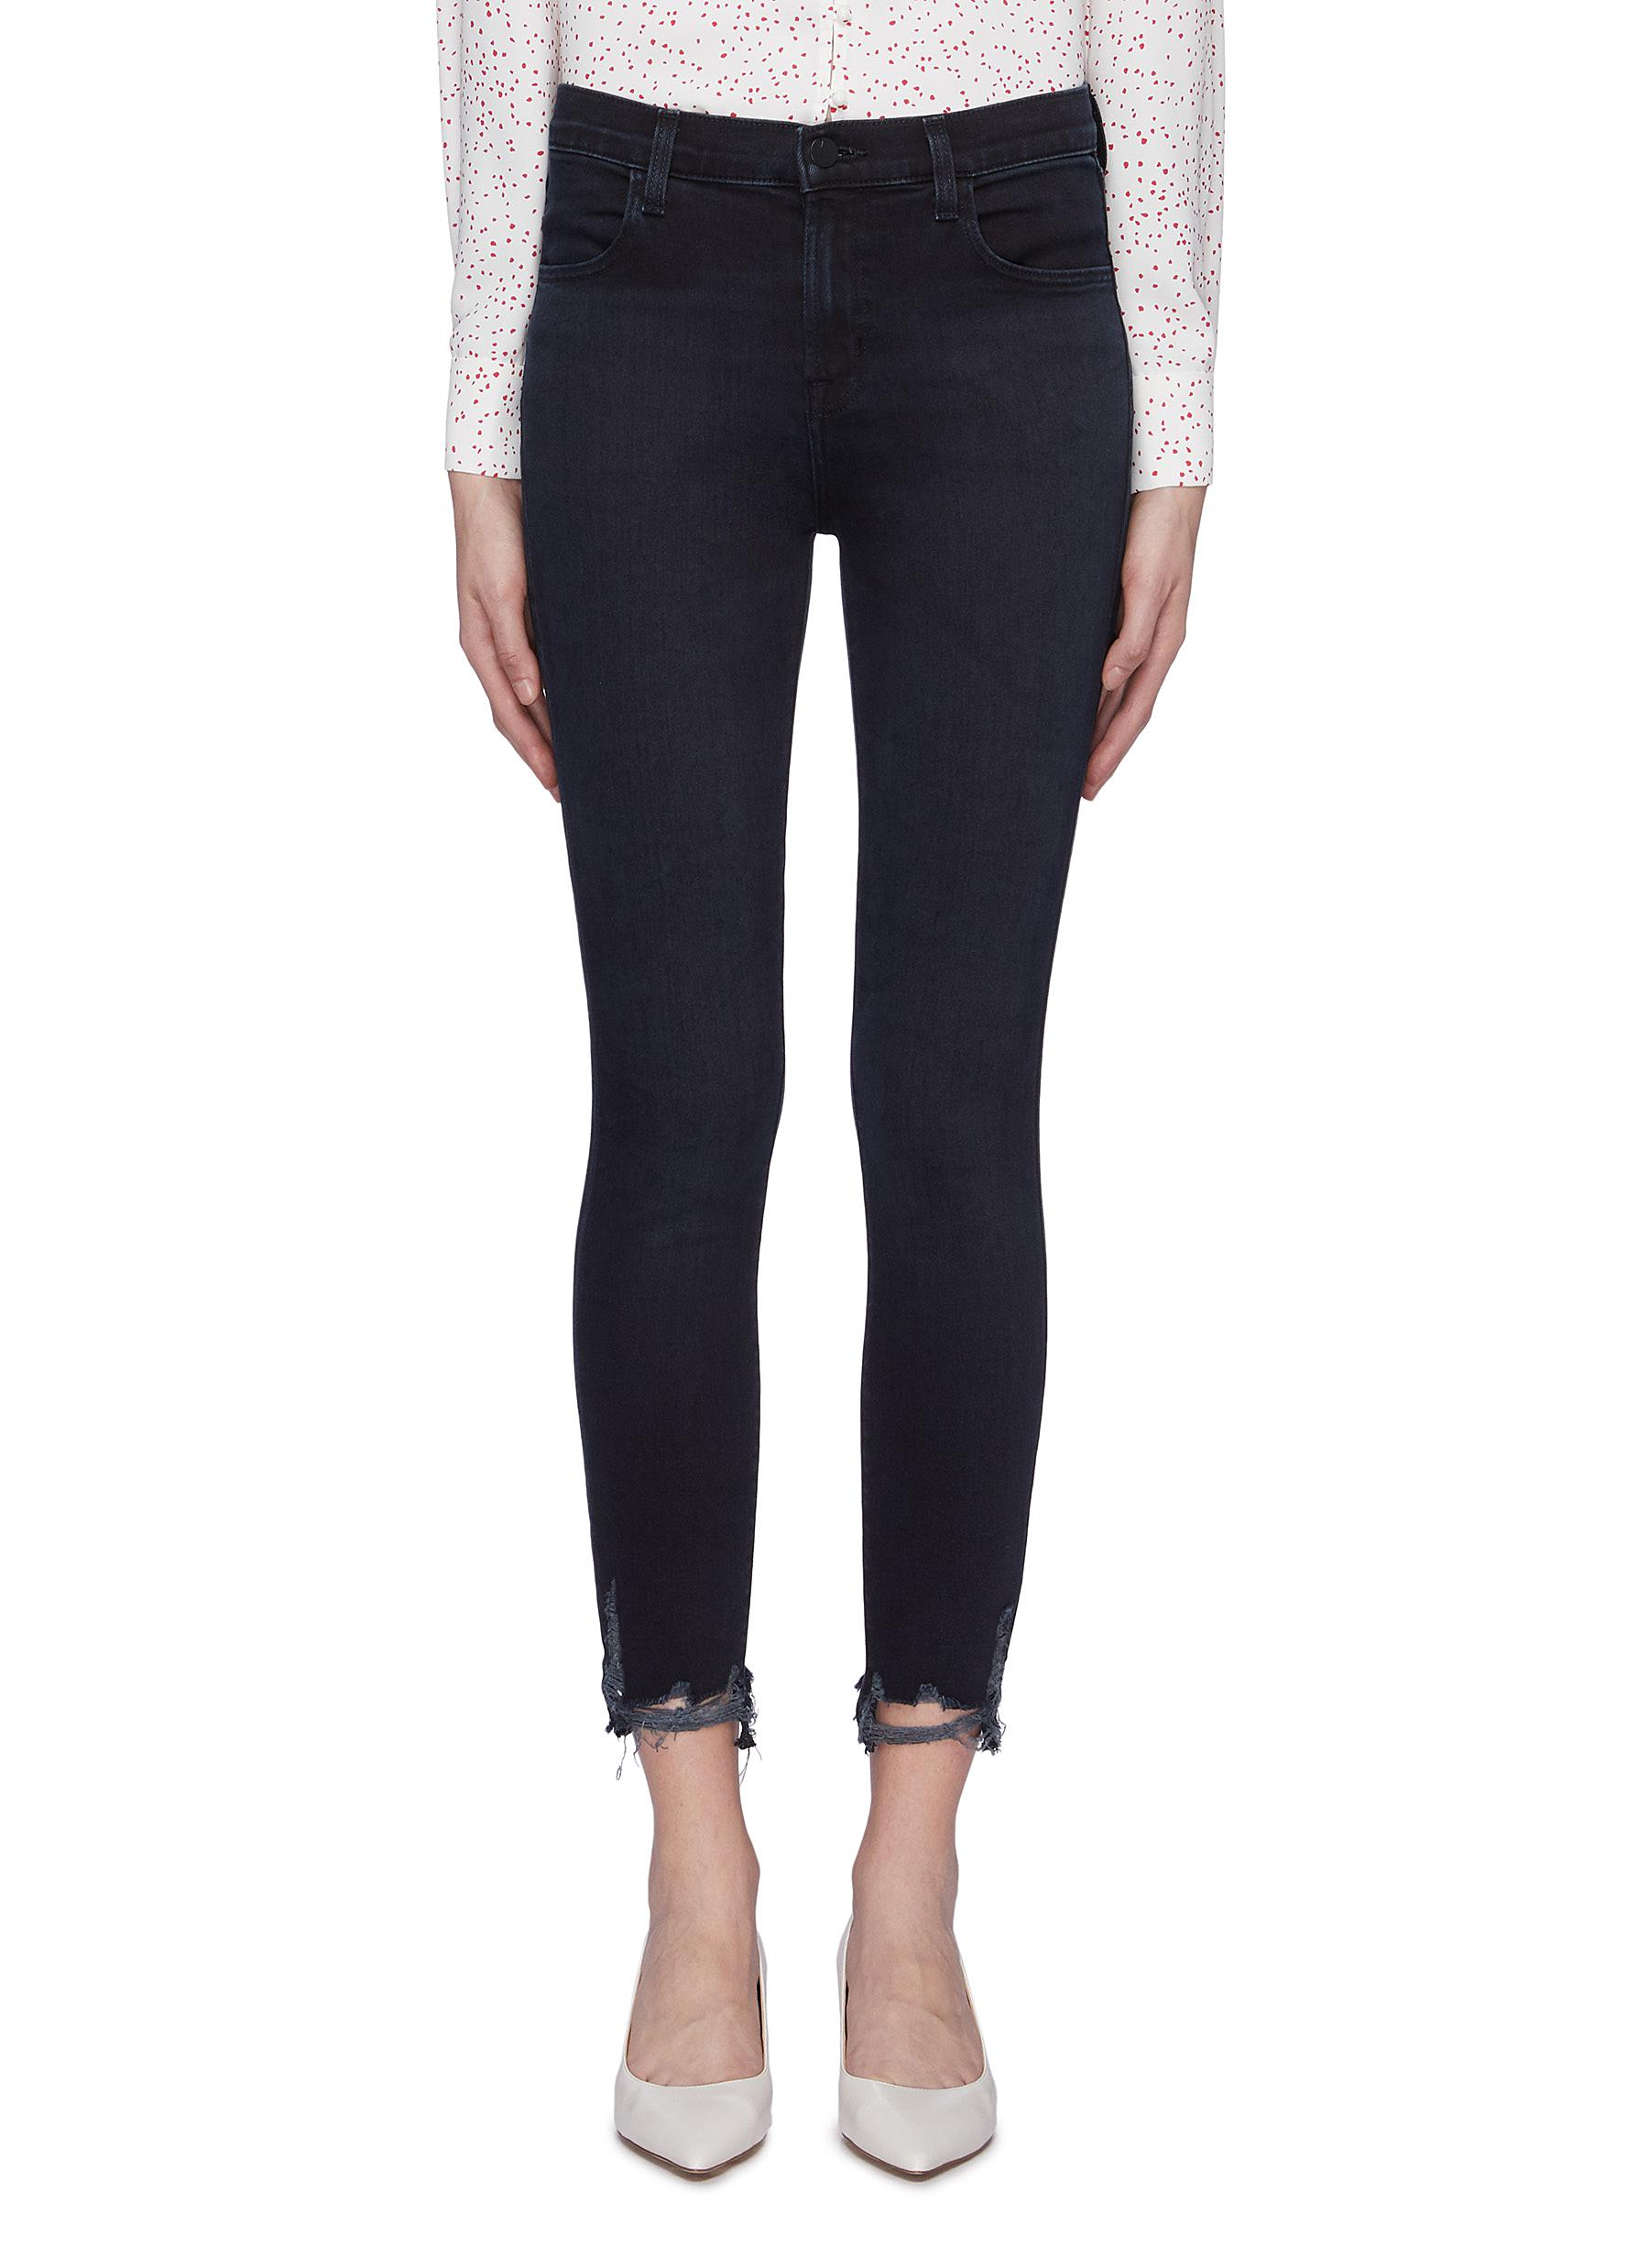 Alana ripped cuff cropped skinny jeans by J Brand